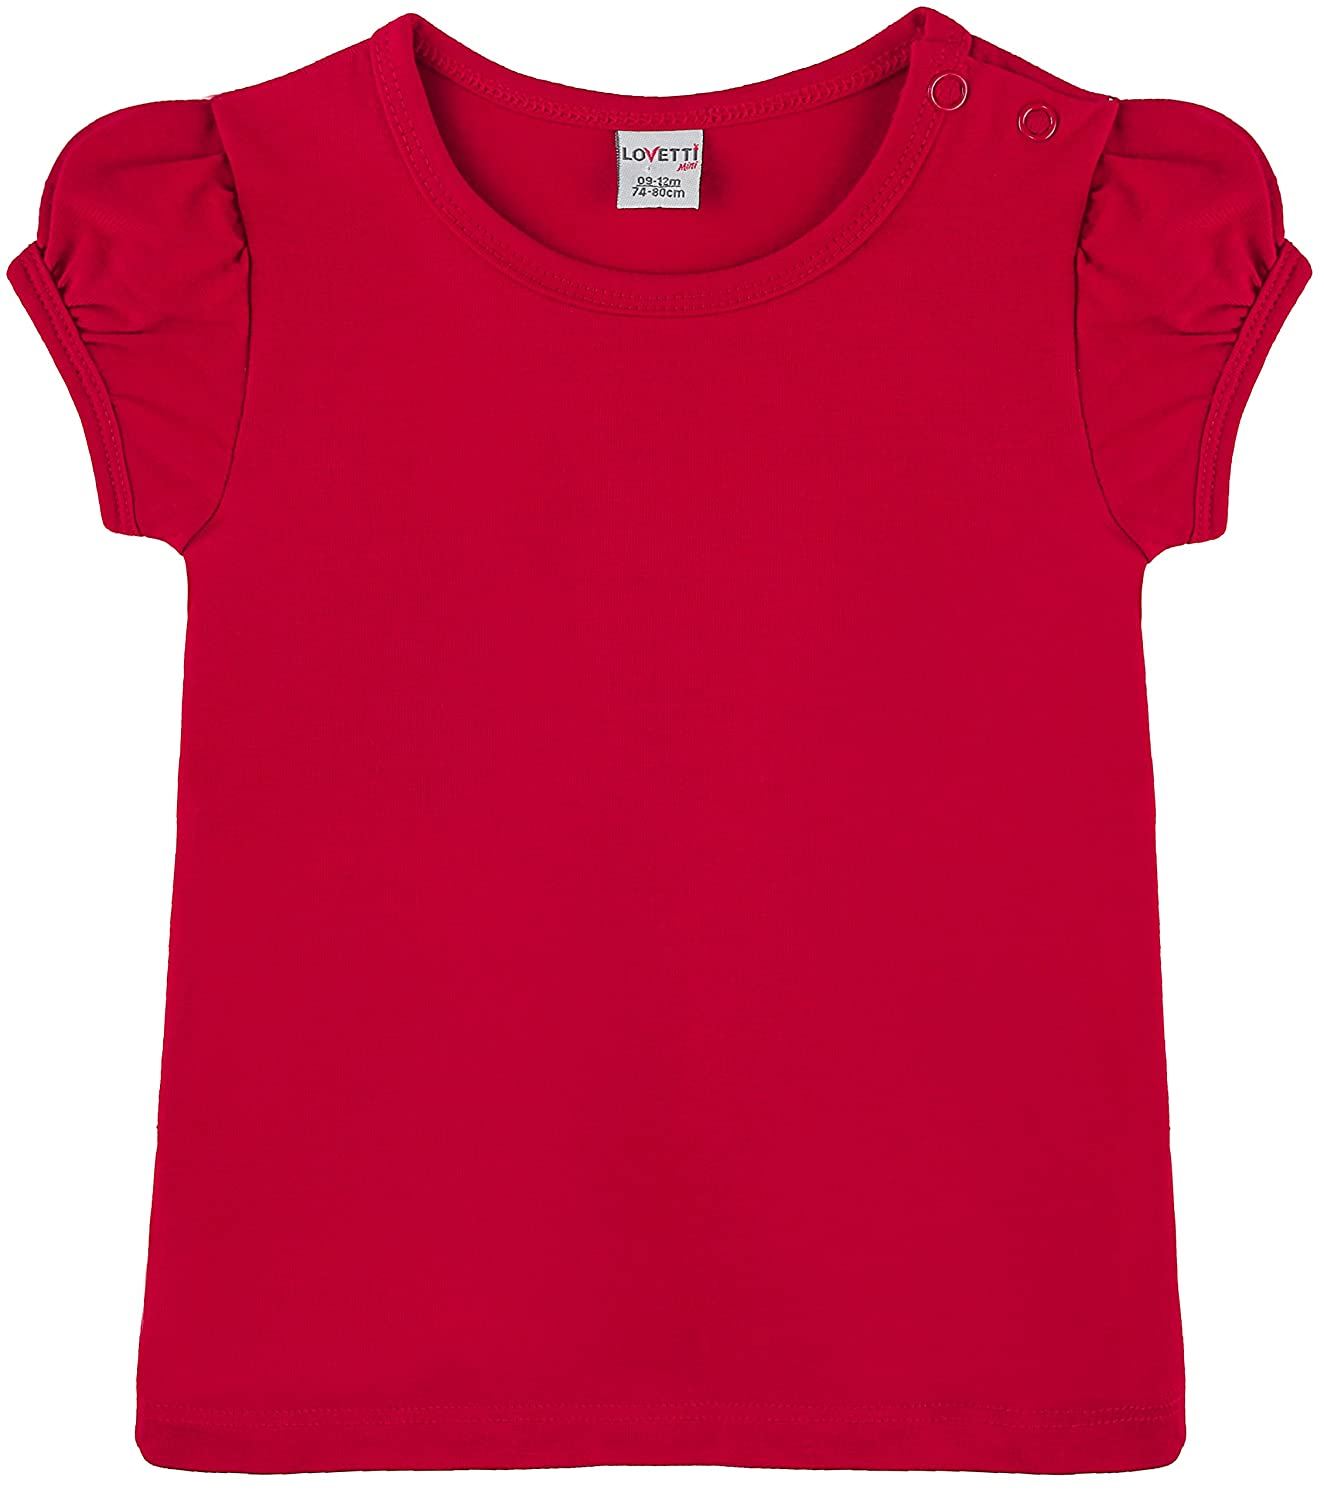 Lovetti Baby Girls' Basic Short Puff Sleeve Round Neck T-Shirt 31000